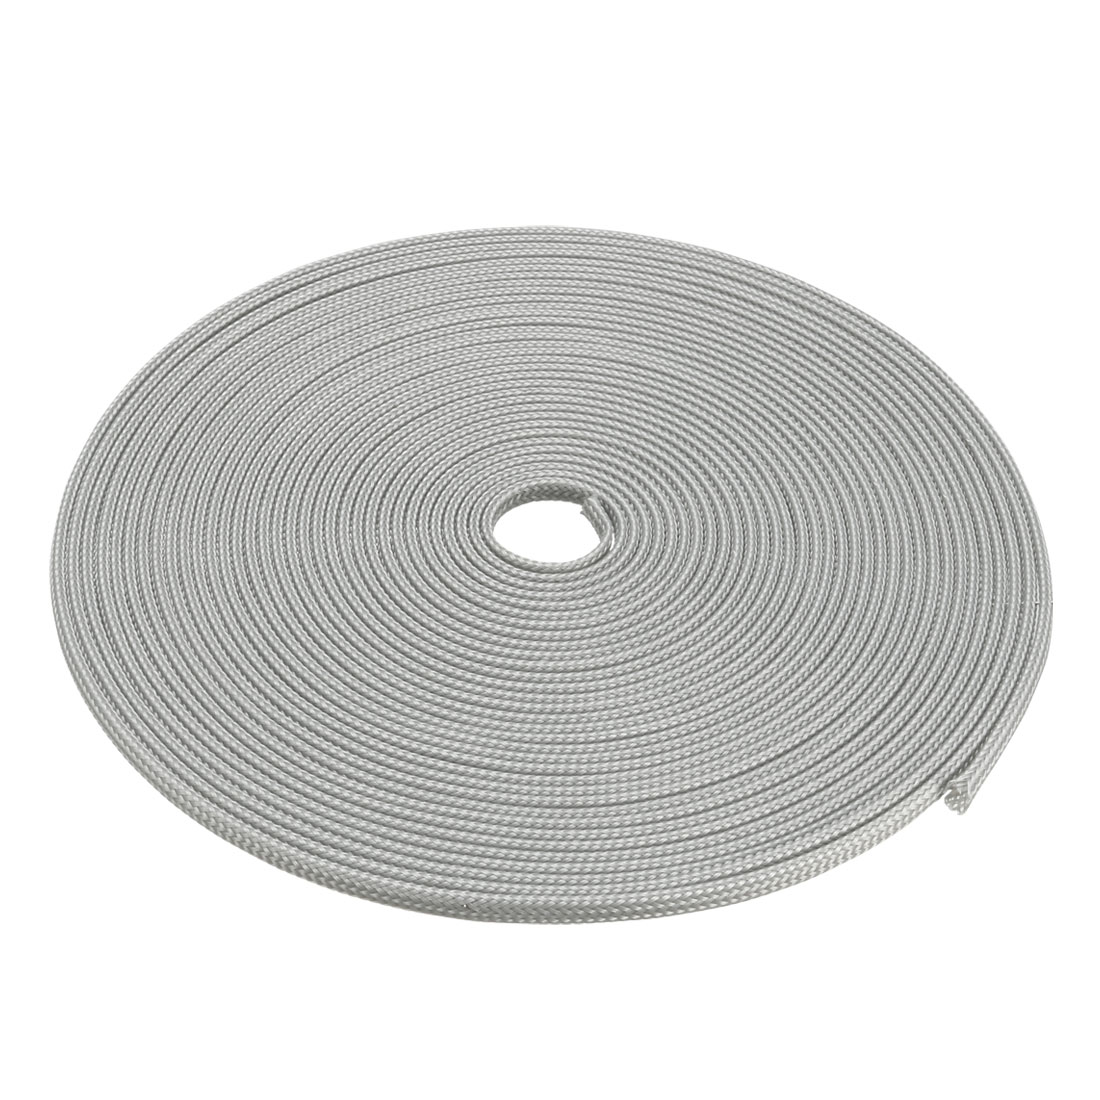 4mm Dia Tight Braided PET Expandable Sleeving Cable Wrap Sheath Silver White 32Ft